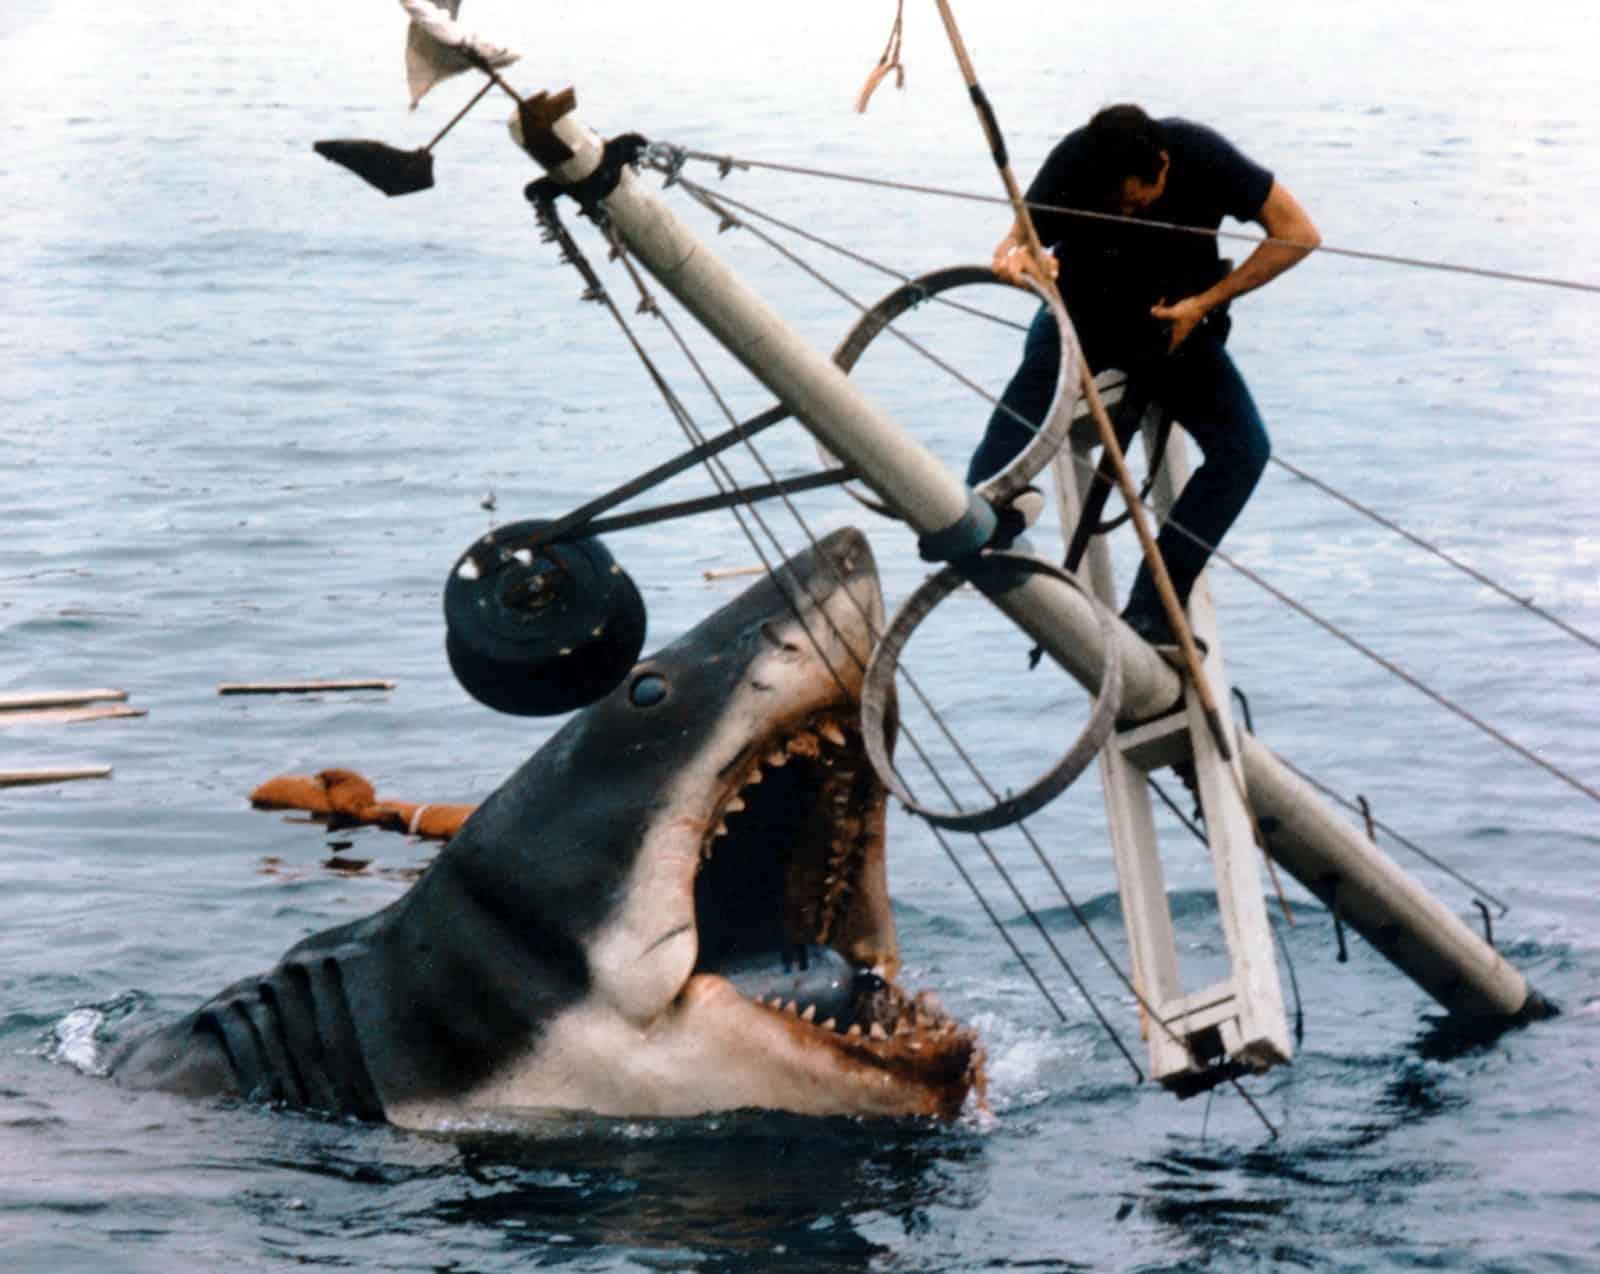 jaws-40th-anniversary.jpg?fit=1600%2C1274&ssl=1